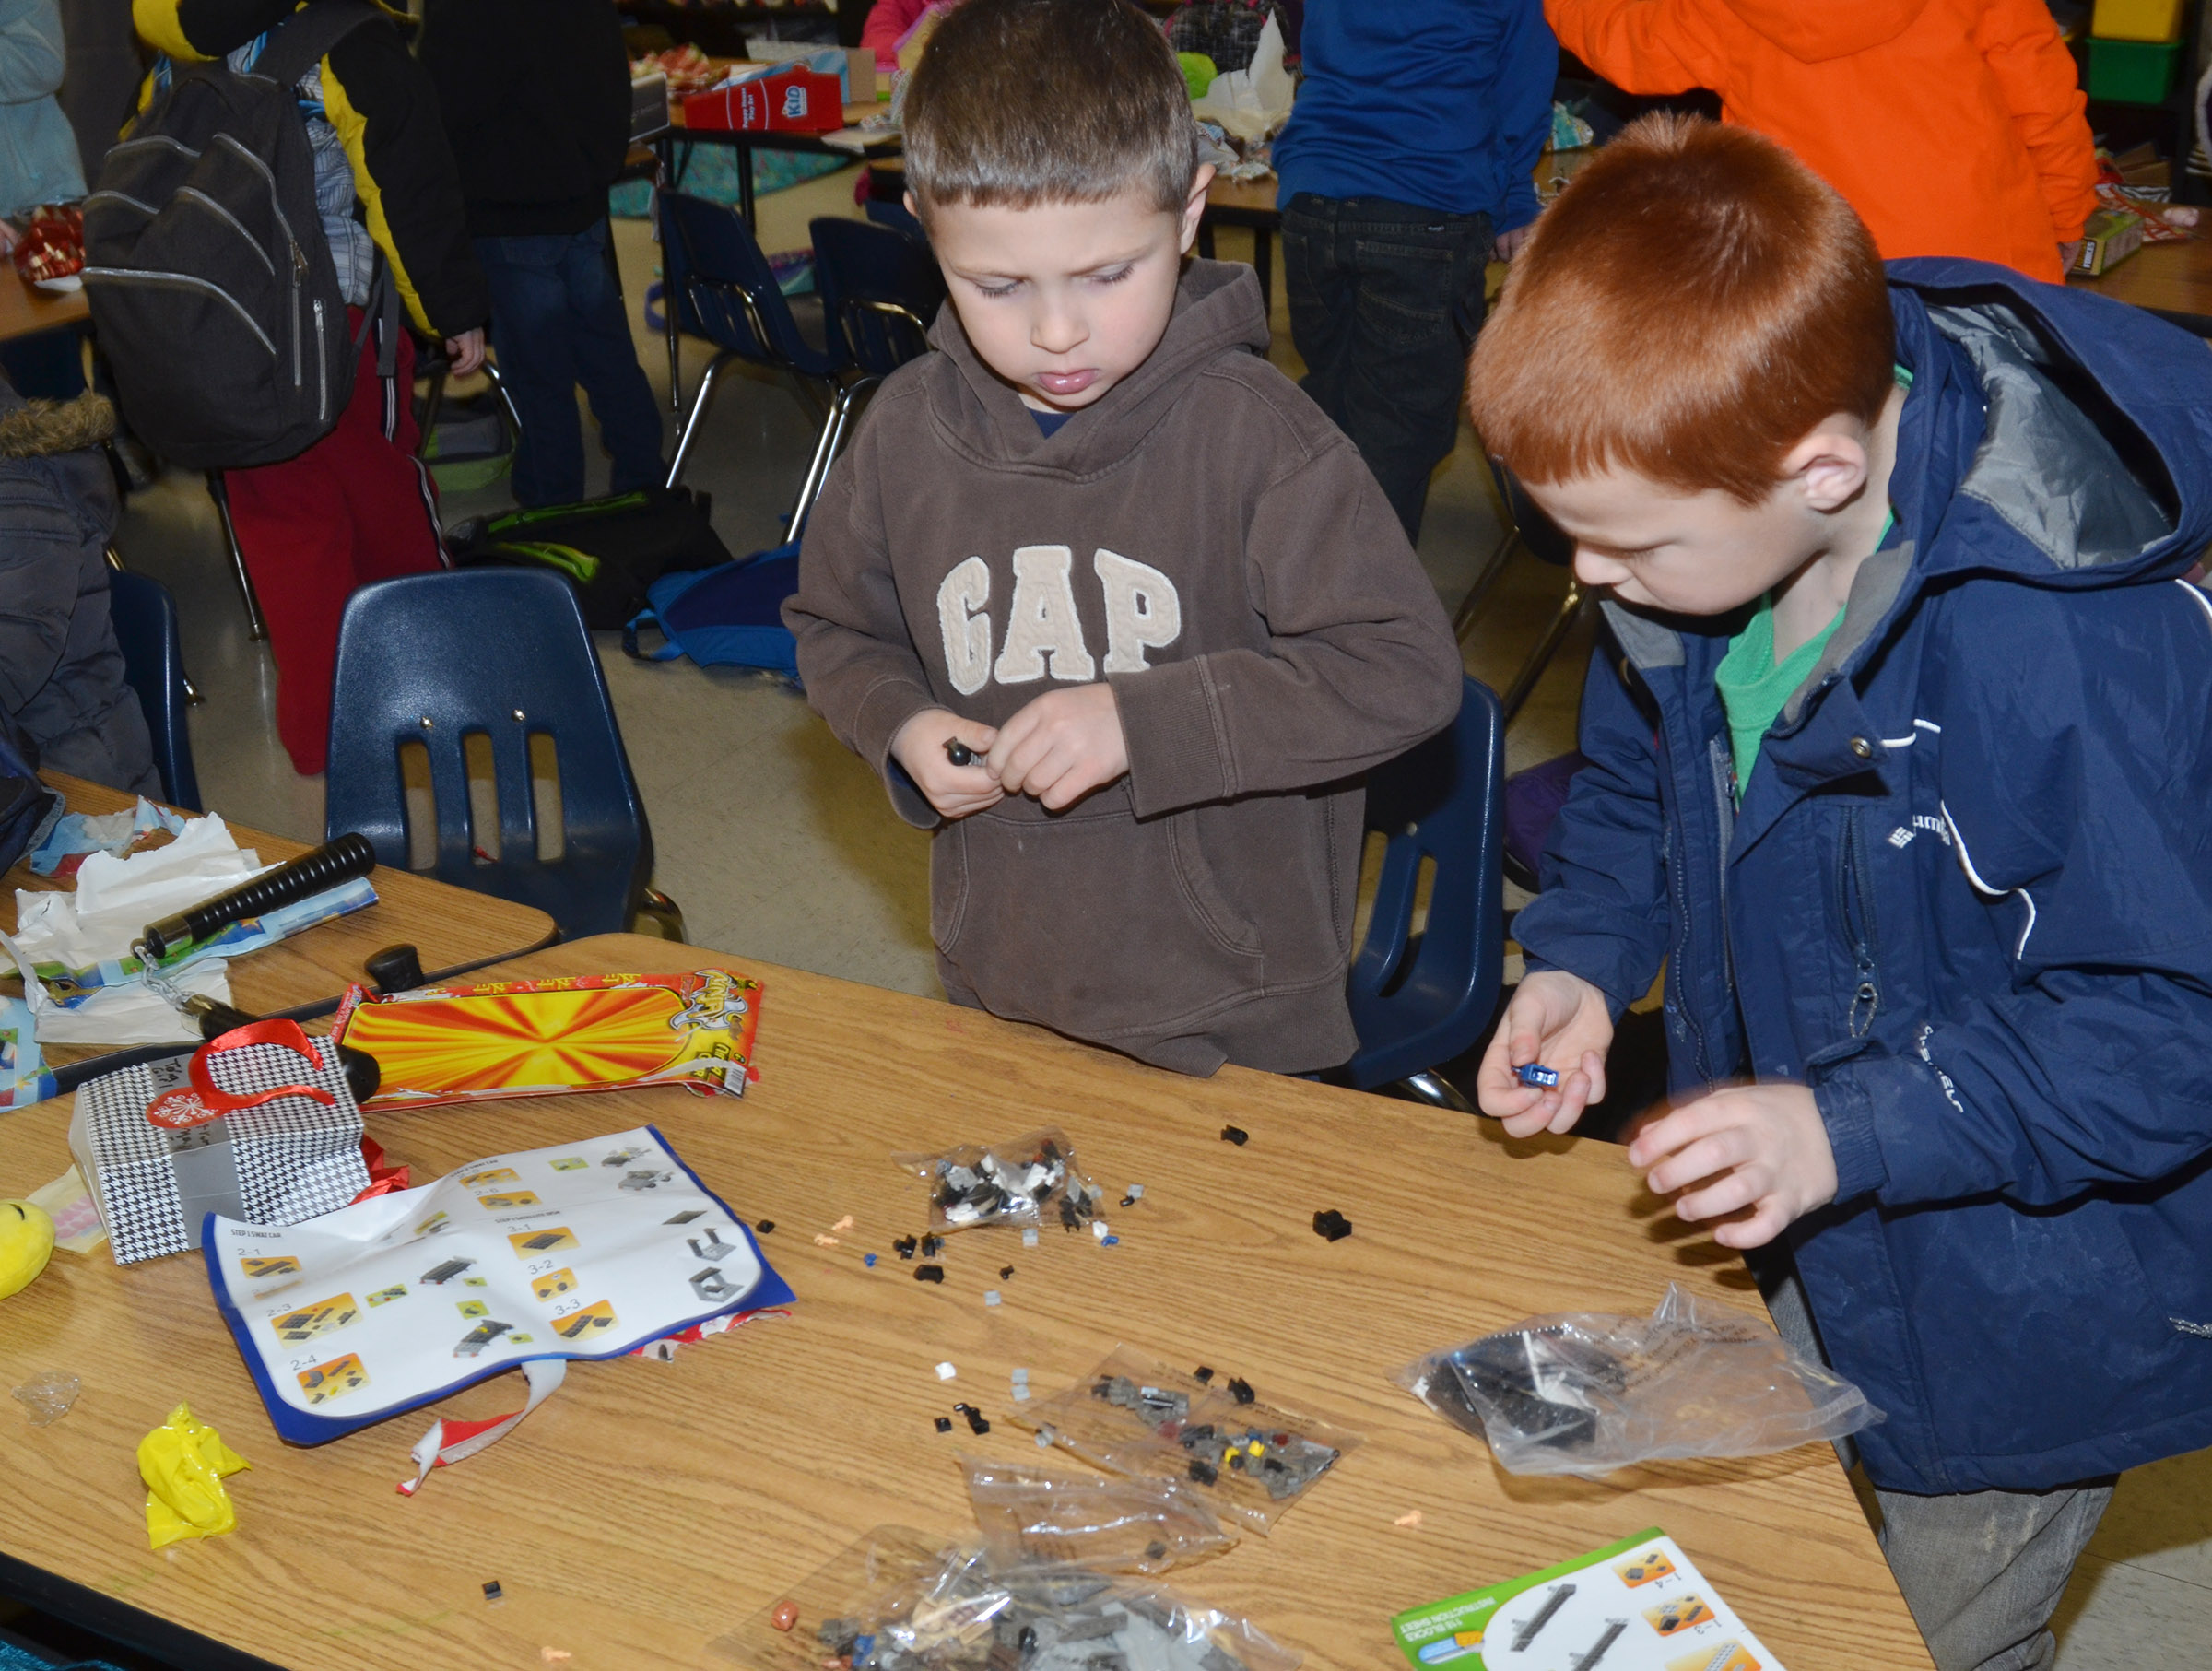 CES first-graders Bryson Gabehart, at left, and Carter Wethington play with the toys they received.